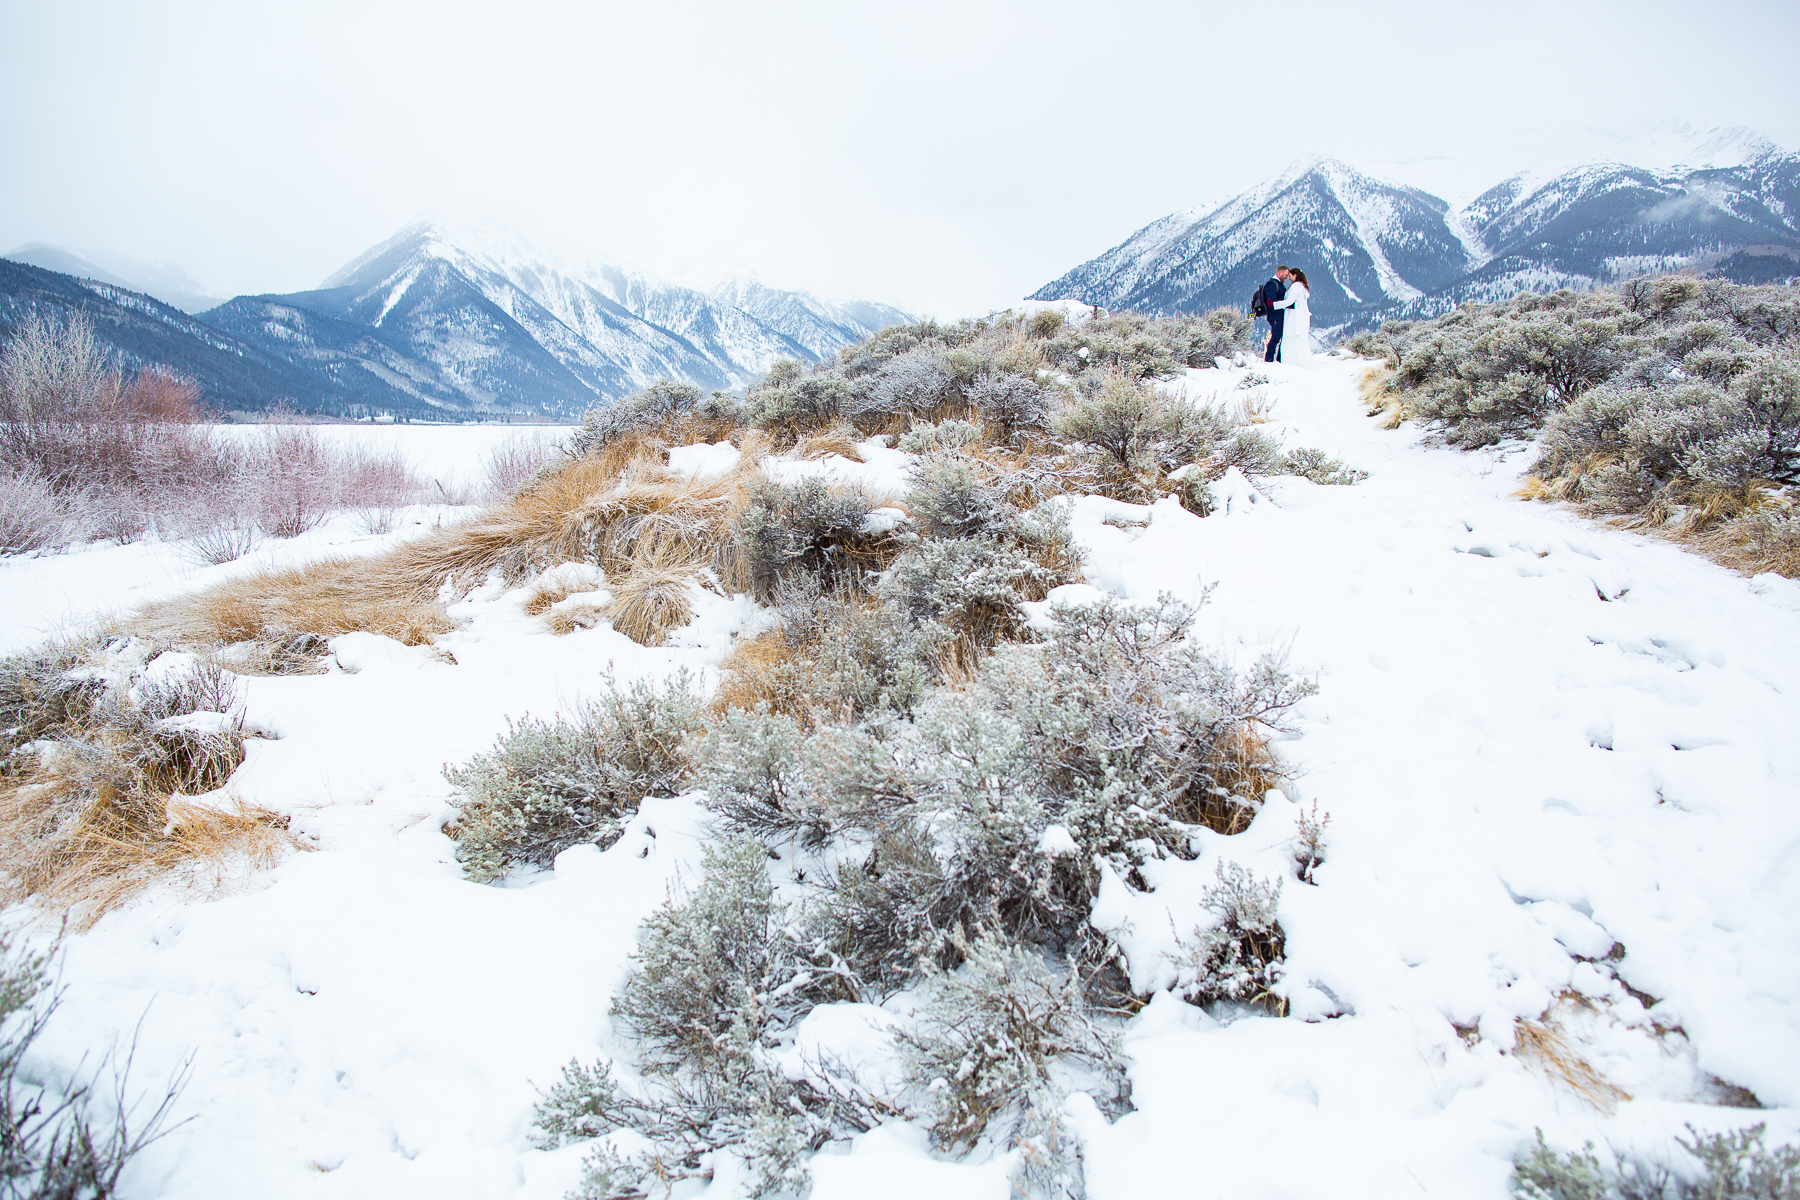 Twin Lakes, Colorado Winter Wedding Images | The scrub on the shores provided texture and color to their wintery snowglobe elopement